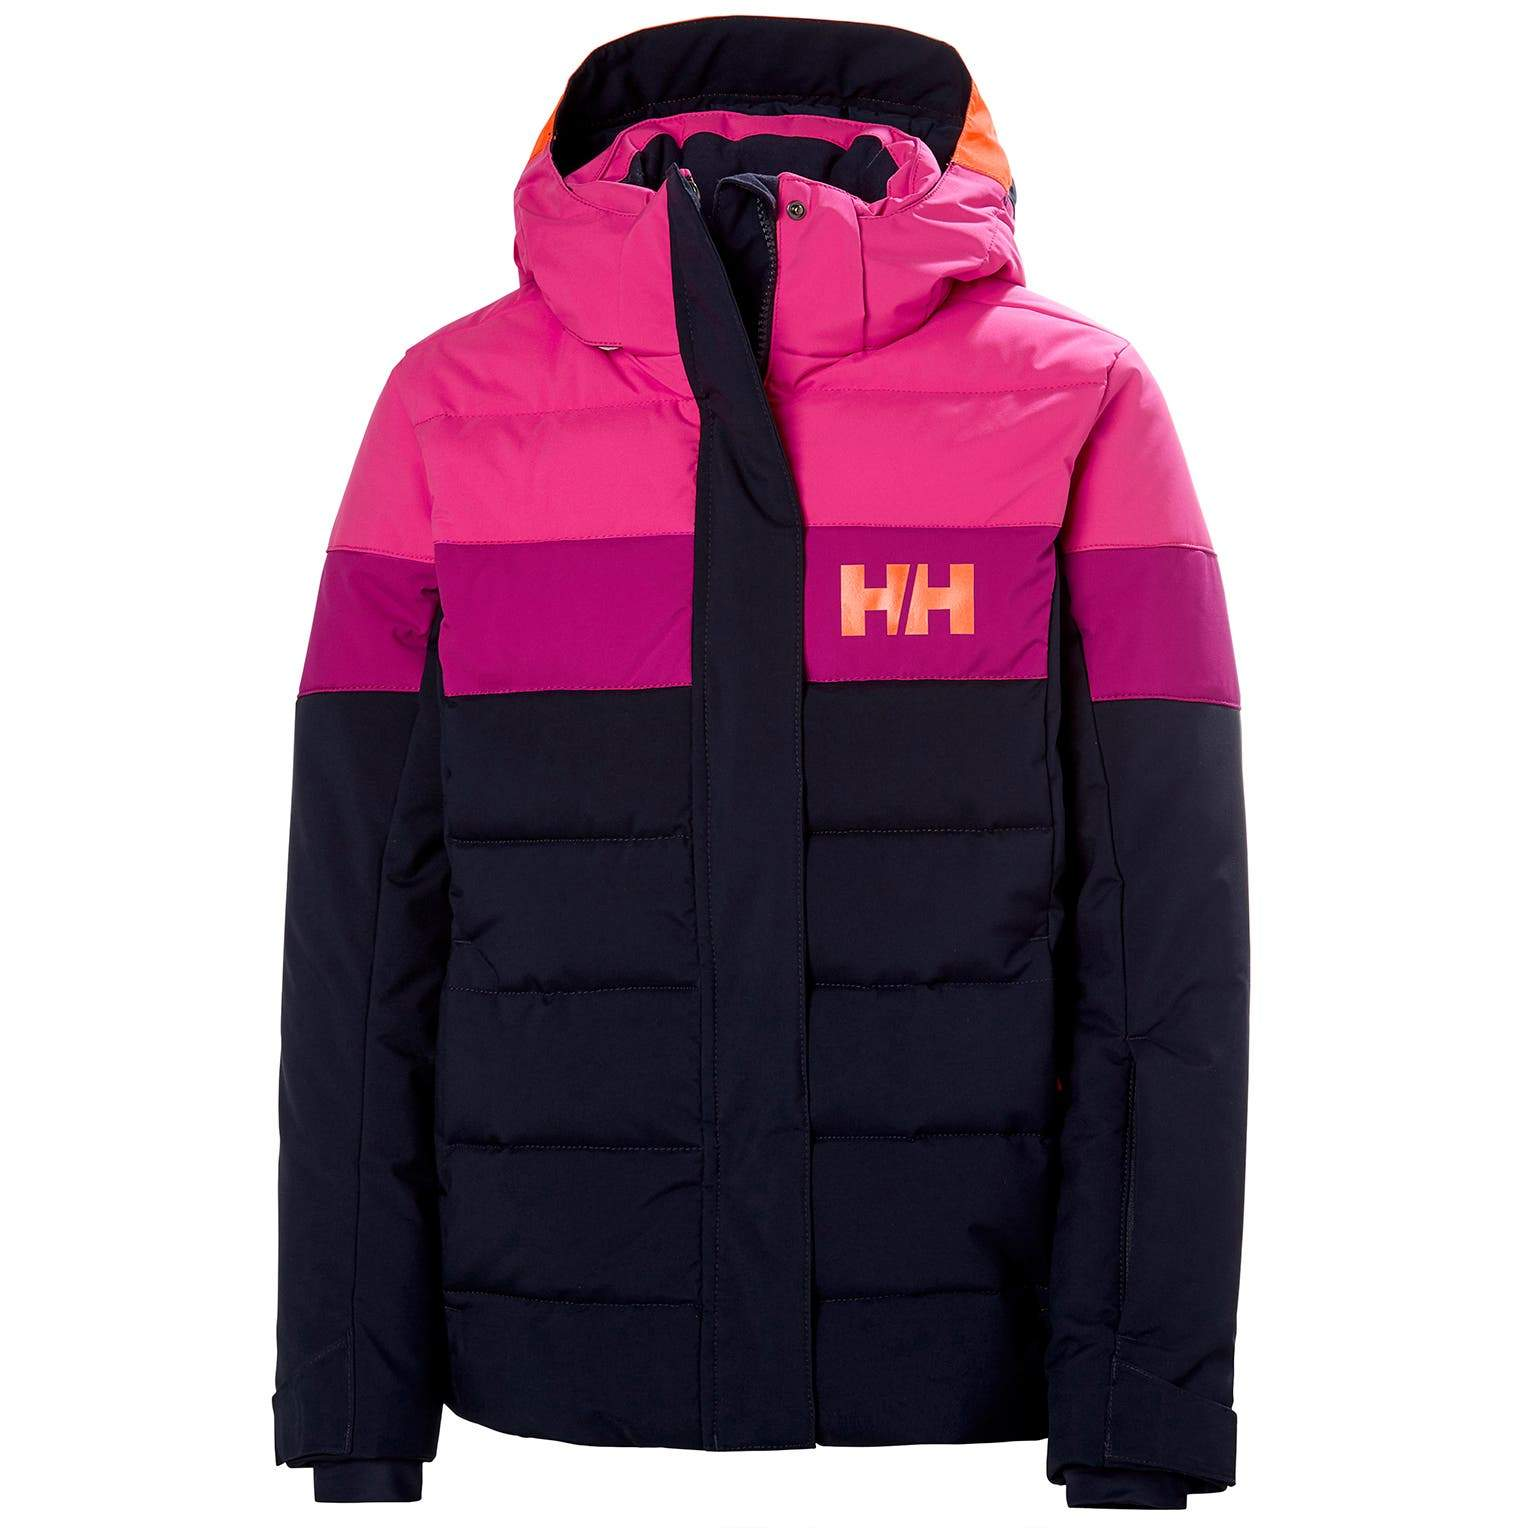 Helly Hansen Diamond Girls Jacket 2020